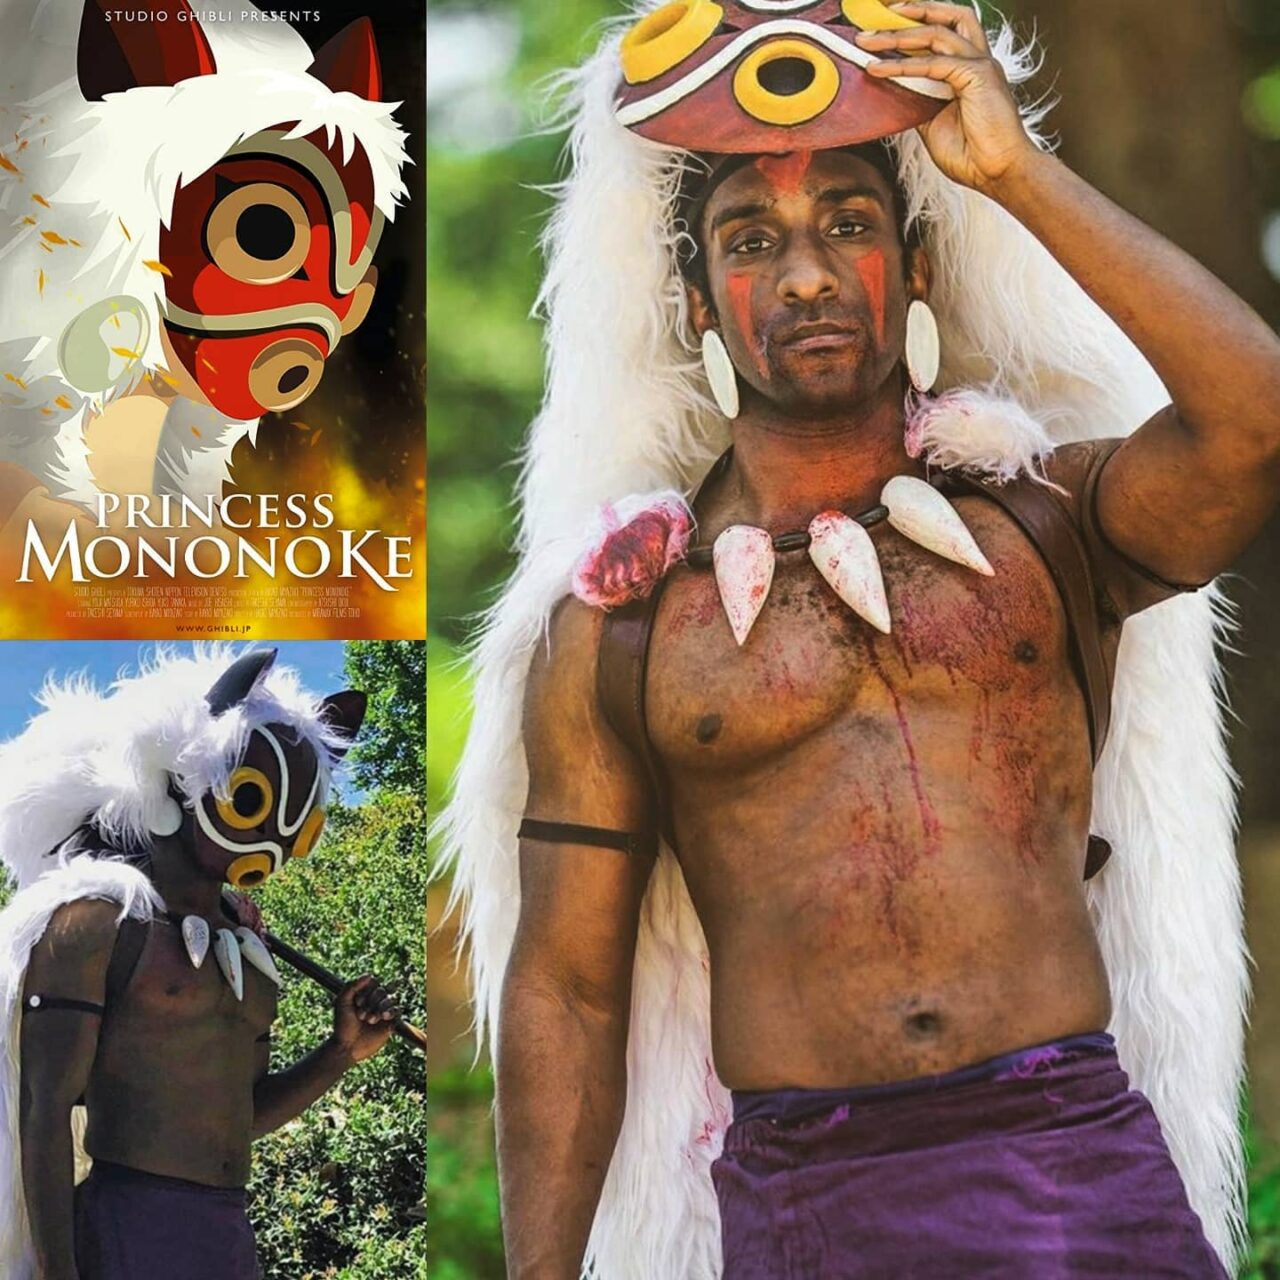 Princess Mononoke Cosplay Serving Serious Honor To A Film Still Loved By The Masses...